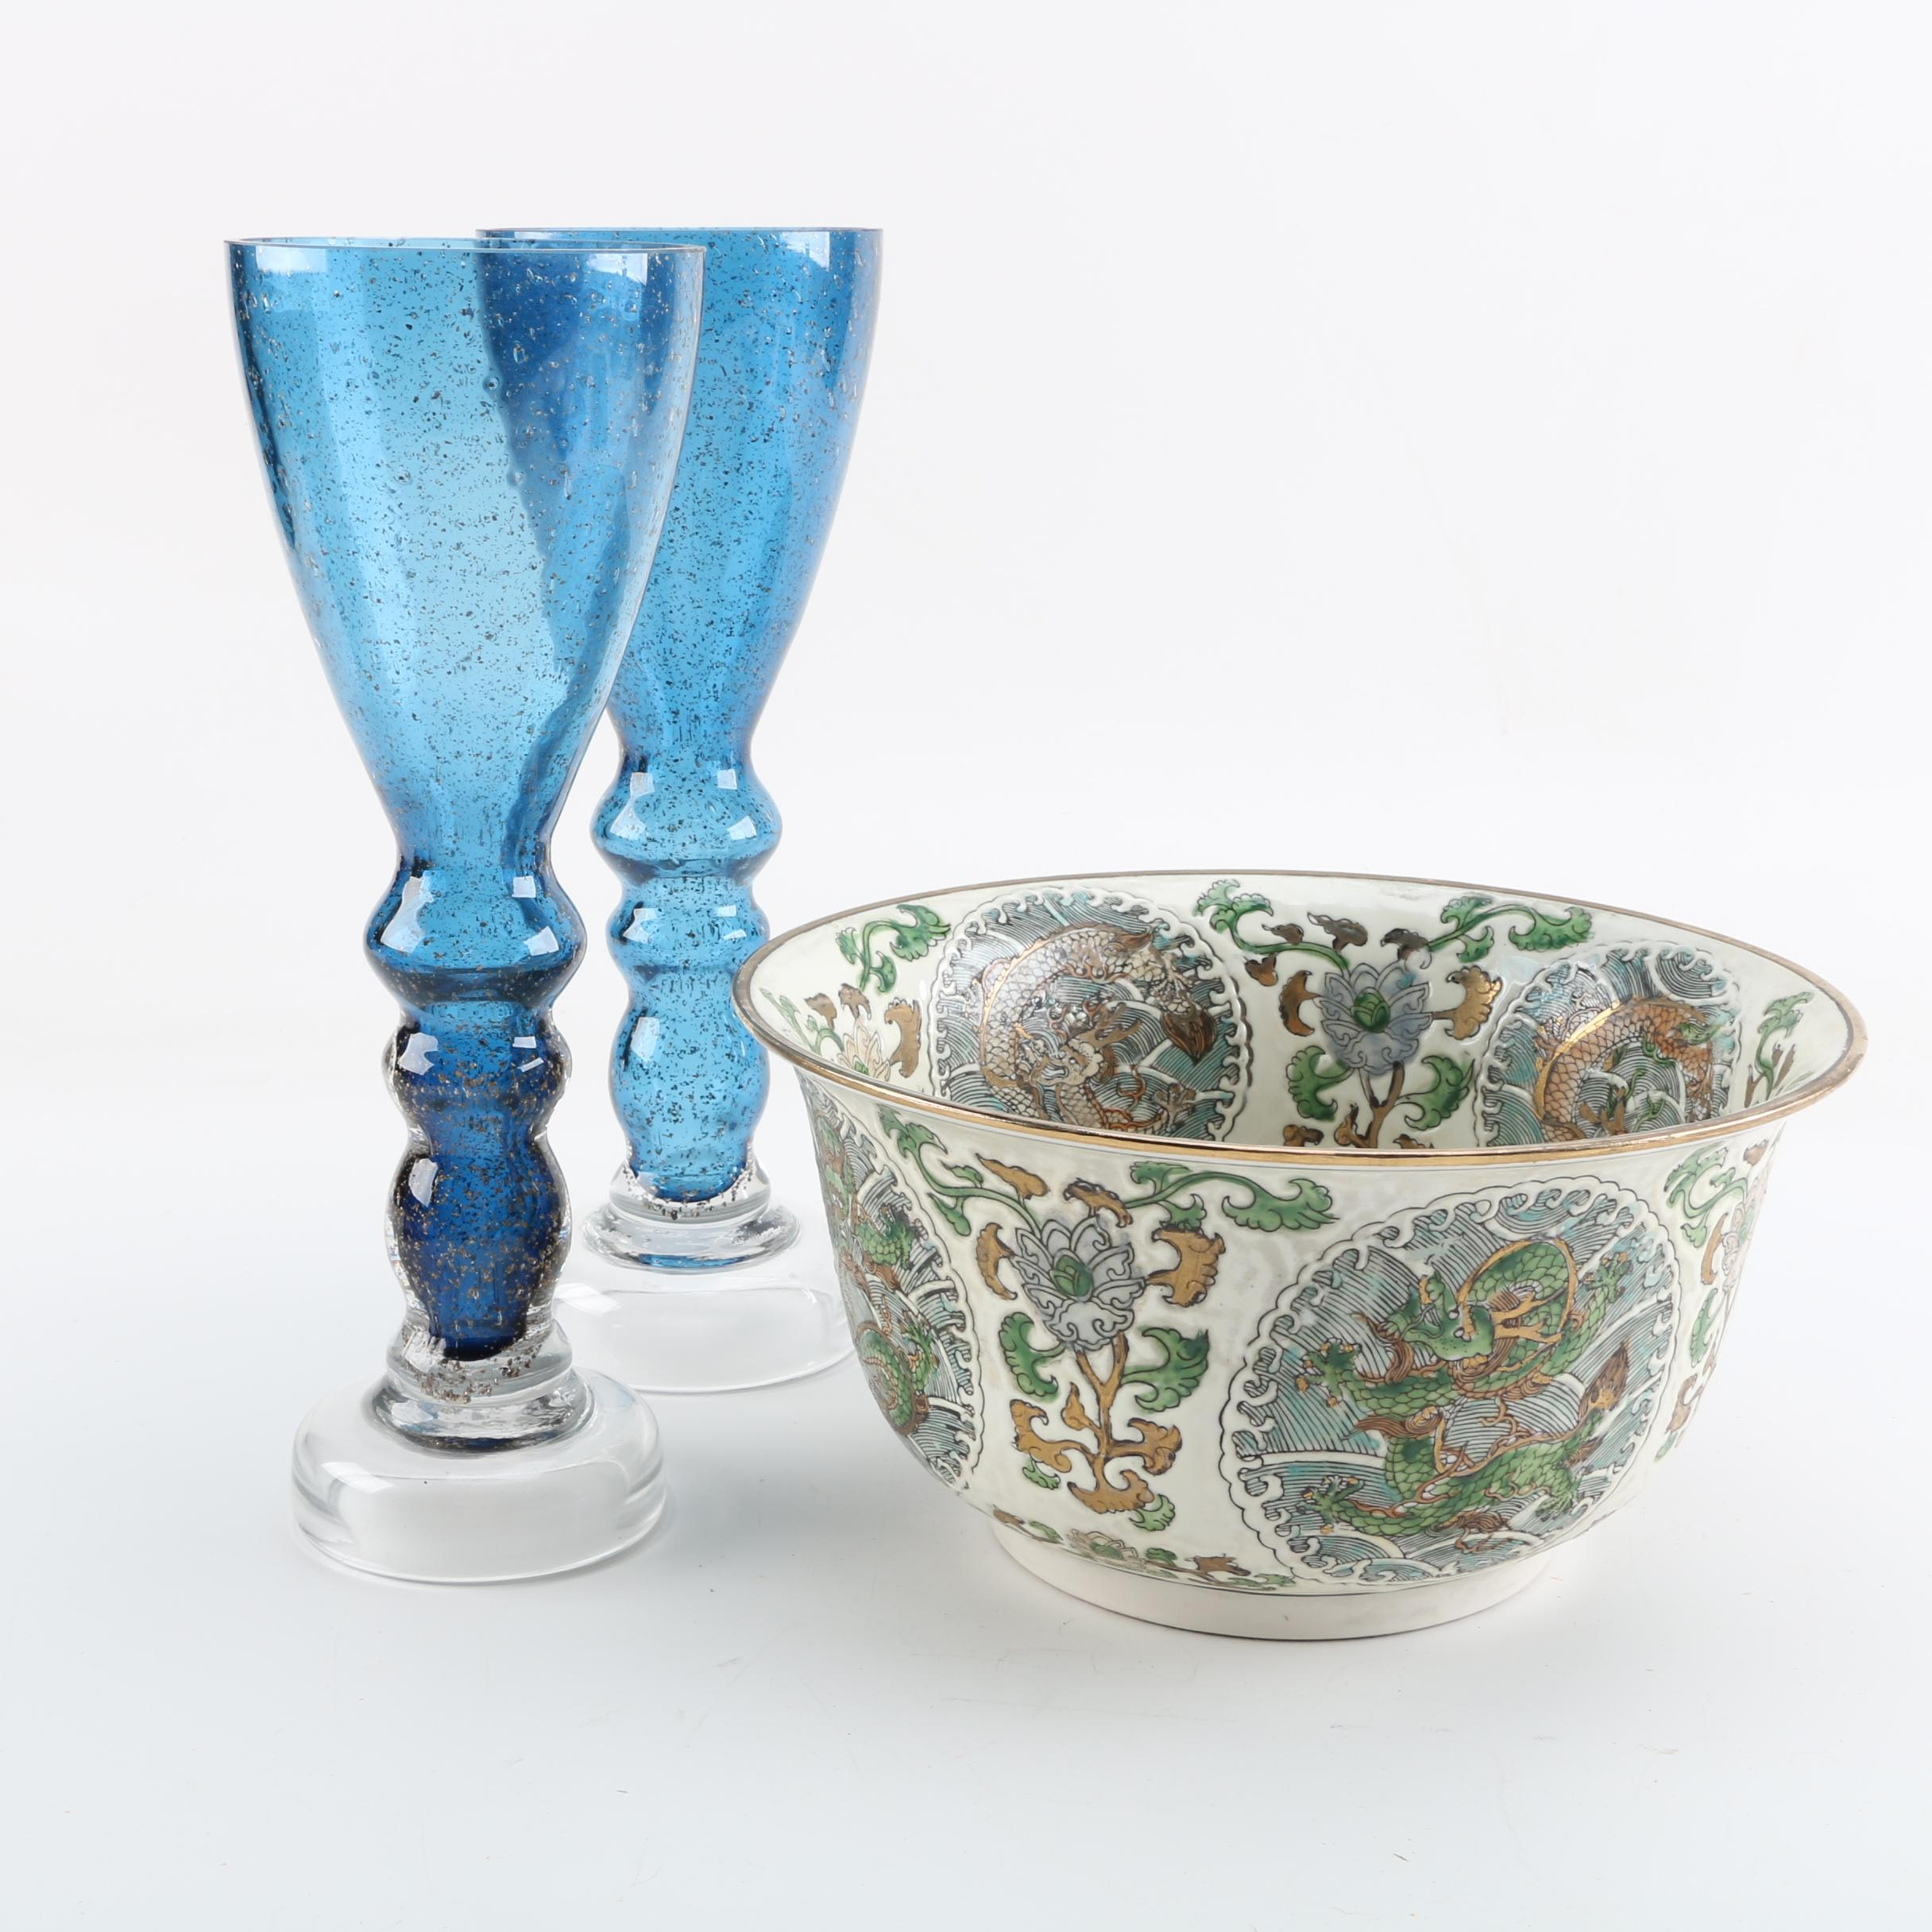 Chinese Hand-Painted Porcelain Bowl and Glass Candleholders